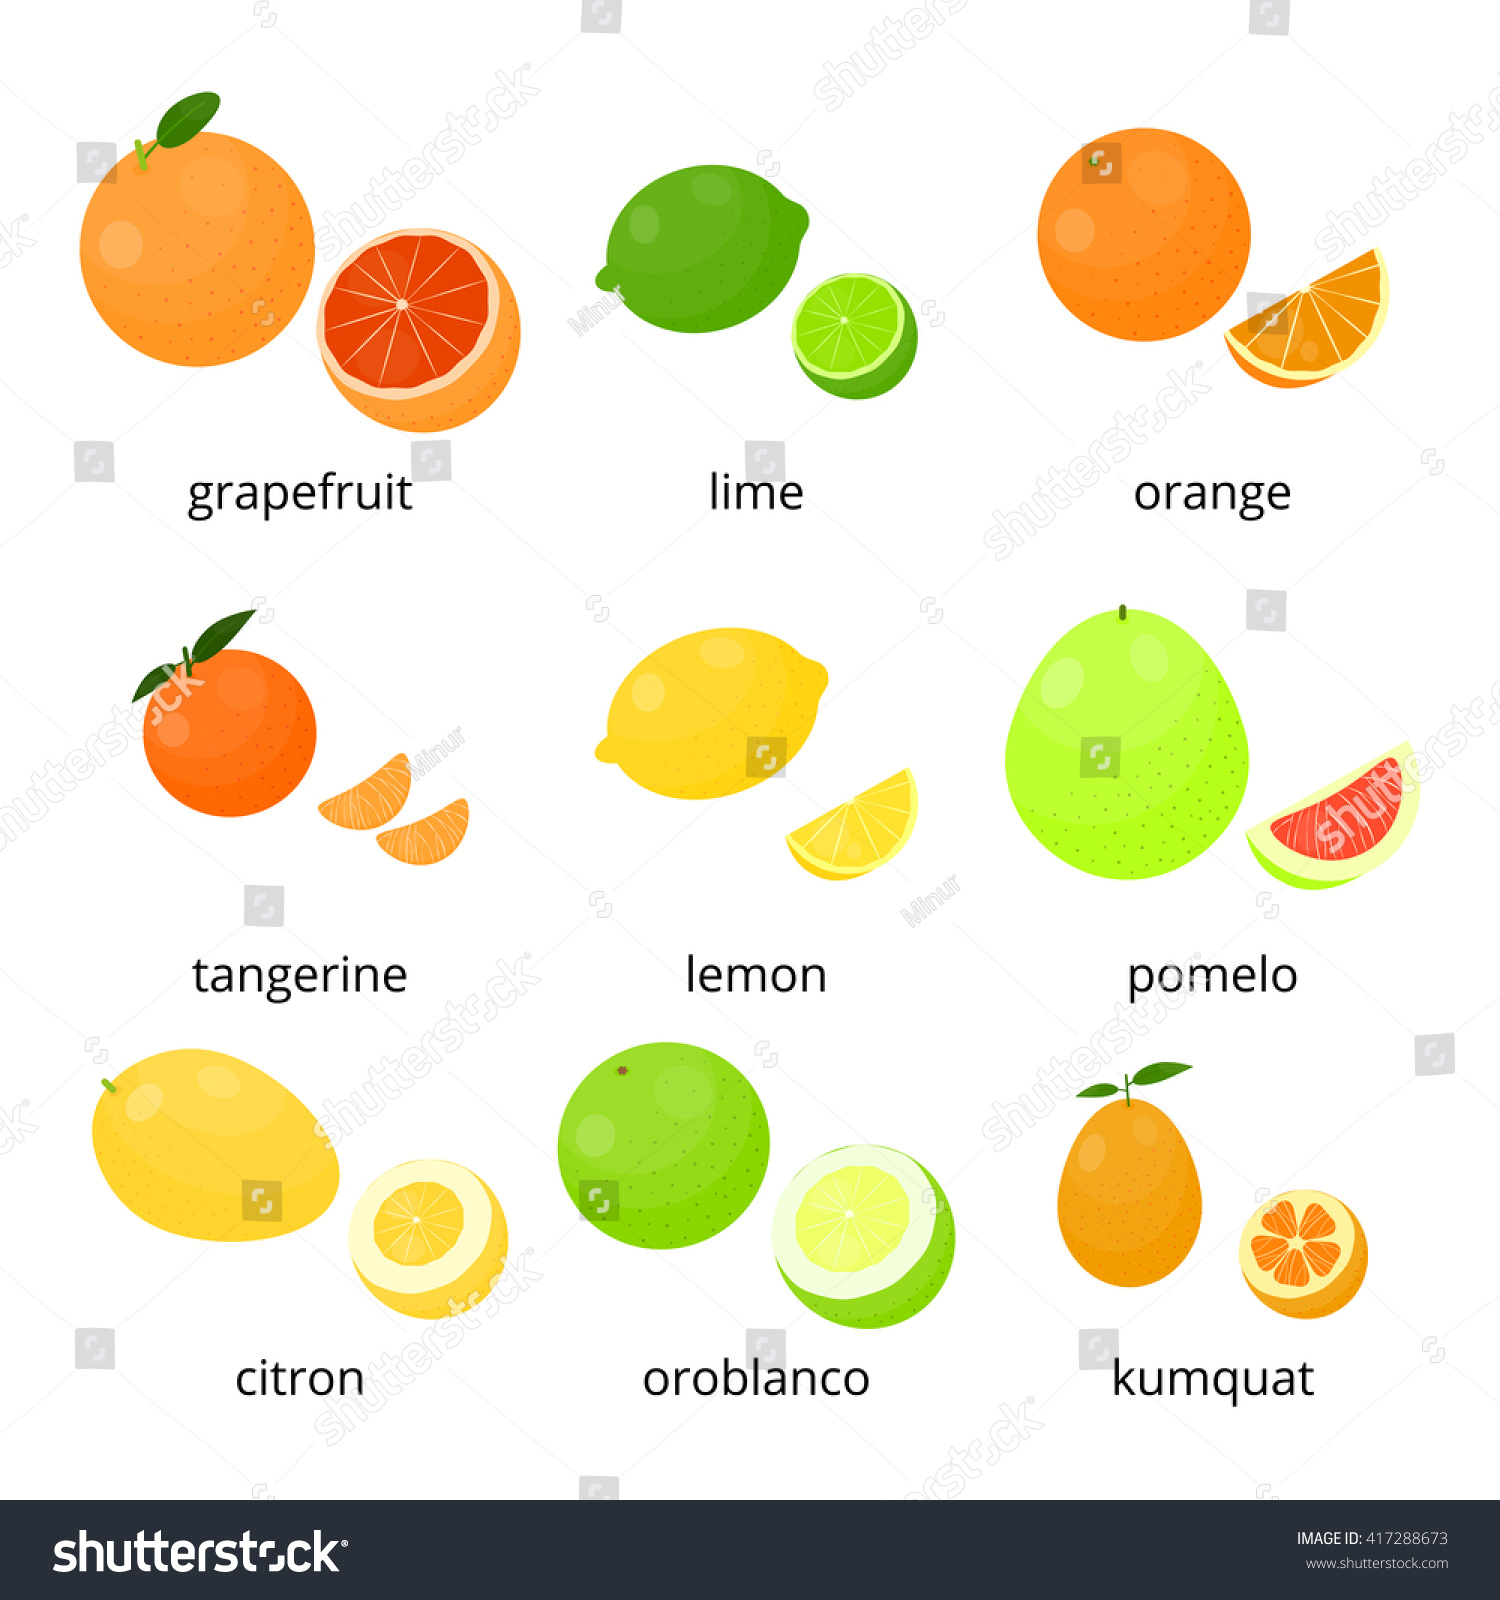 How to Tell a Lemon From a Lime Tree  Home Guides  SF Gate